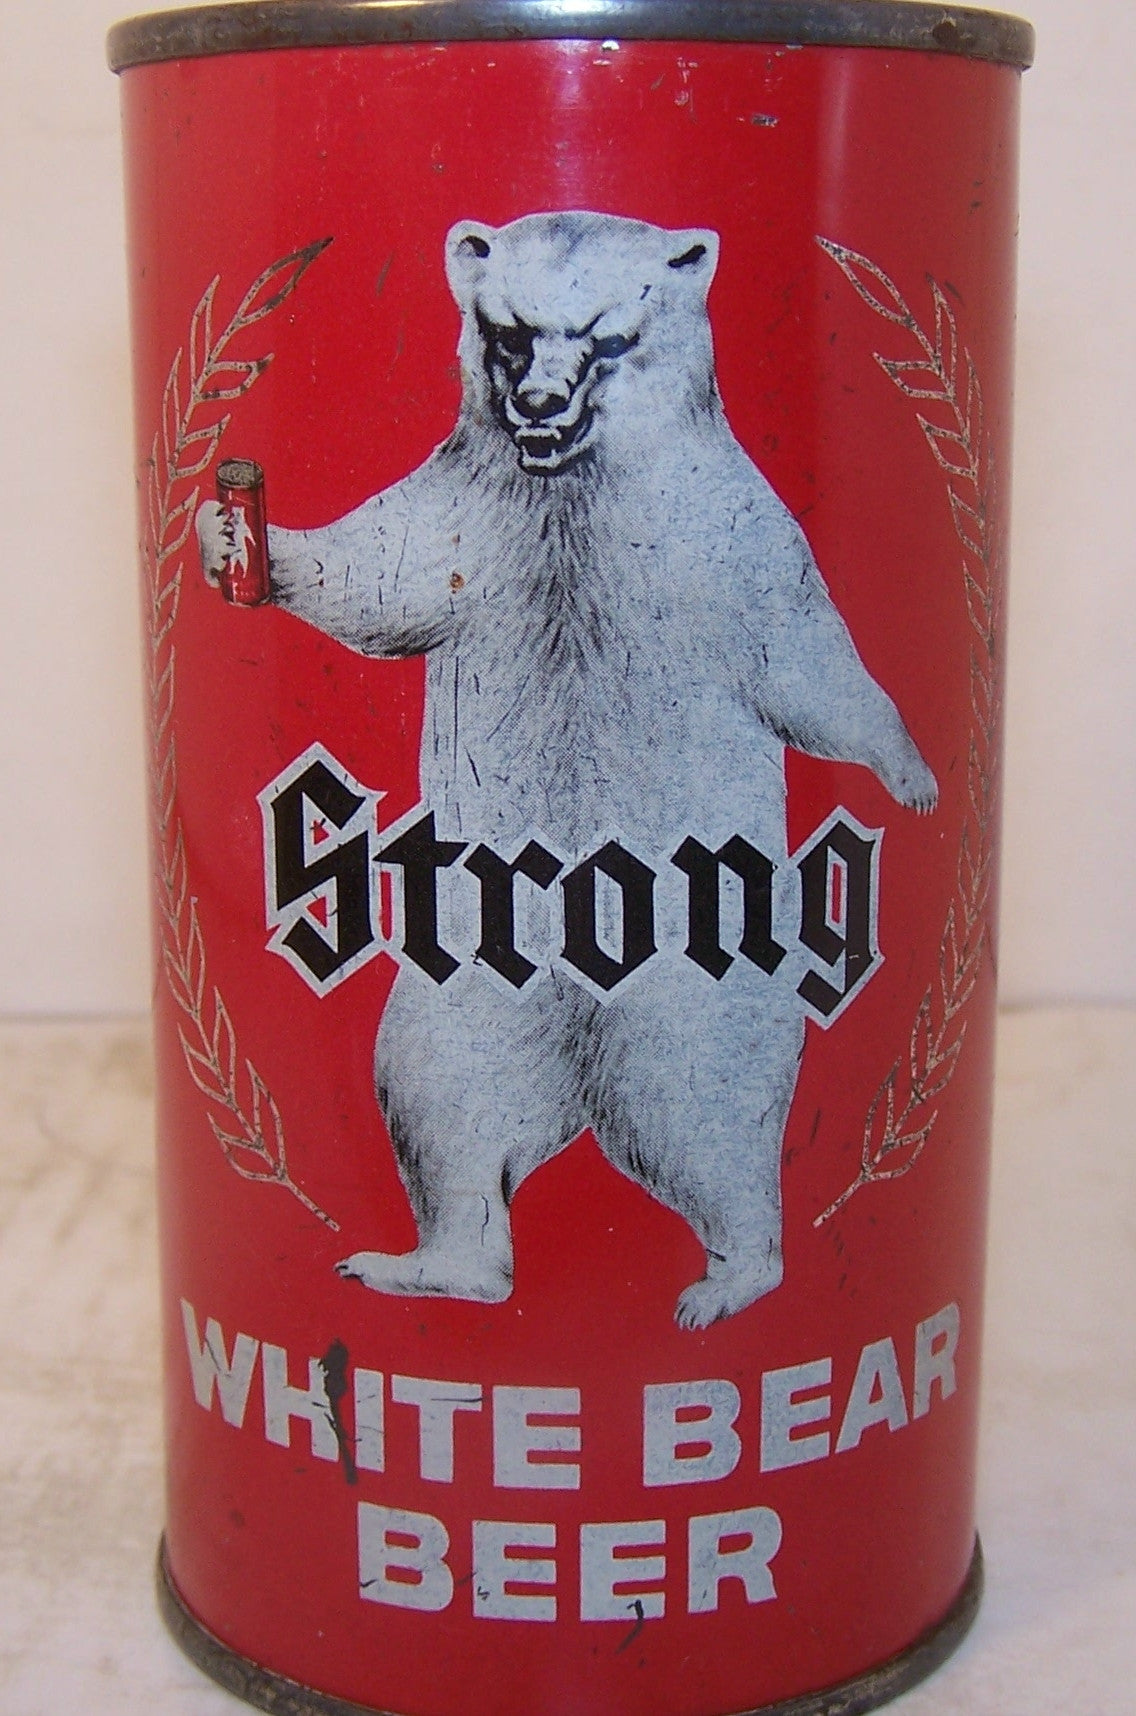 White Bear Beer, USBC 145-13, Grade 1- Sold on 06/22/17